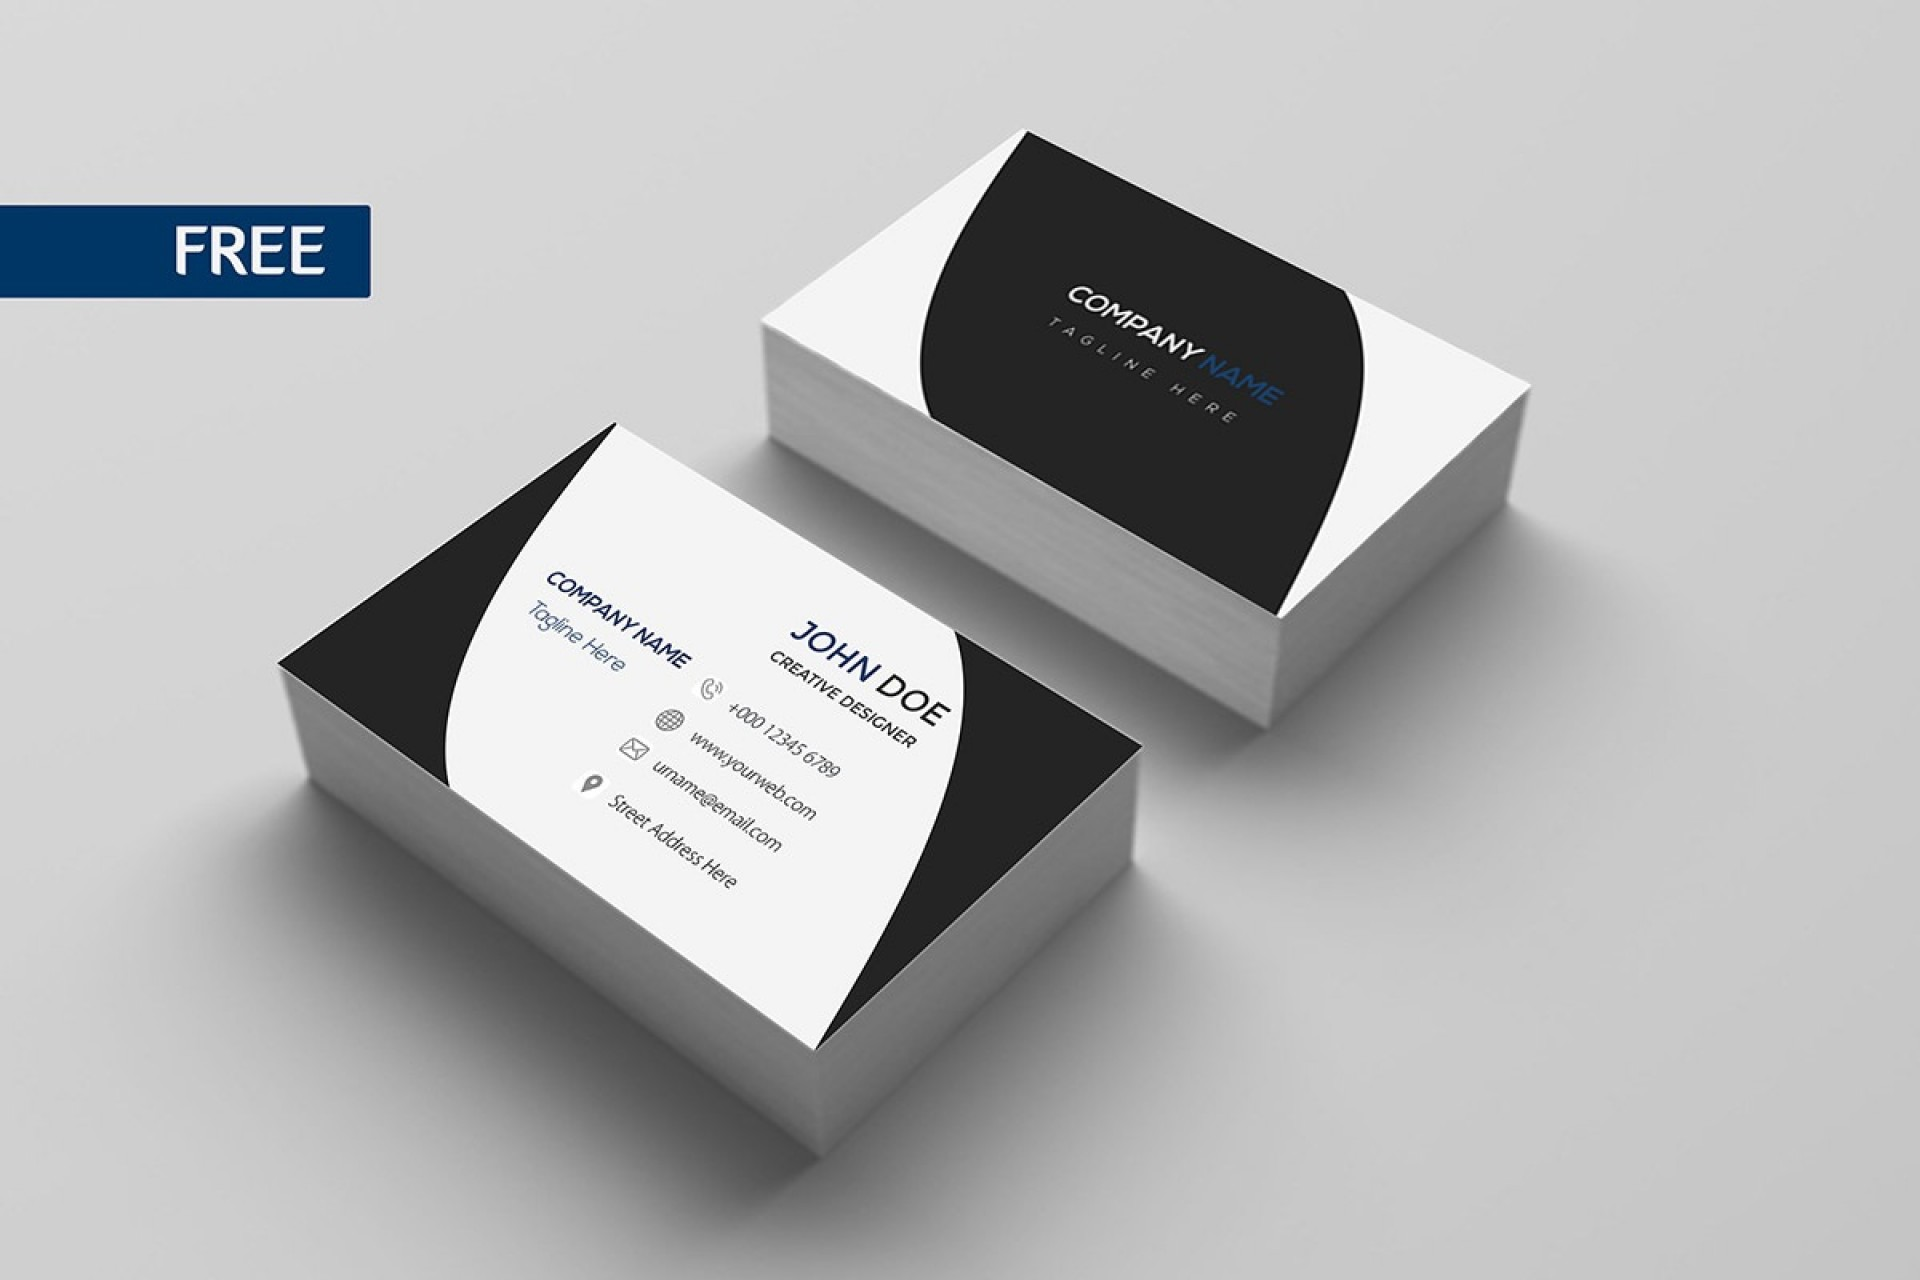 009 Formidable Free Busines Card Design Template Highest Clarity  Templates Visiting Download Psd Photoshop1920